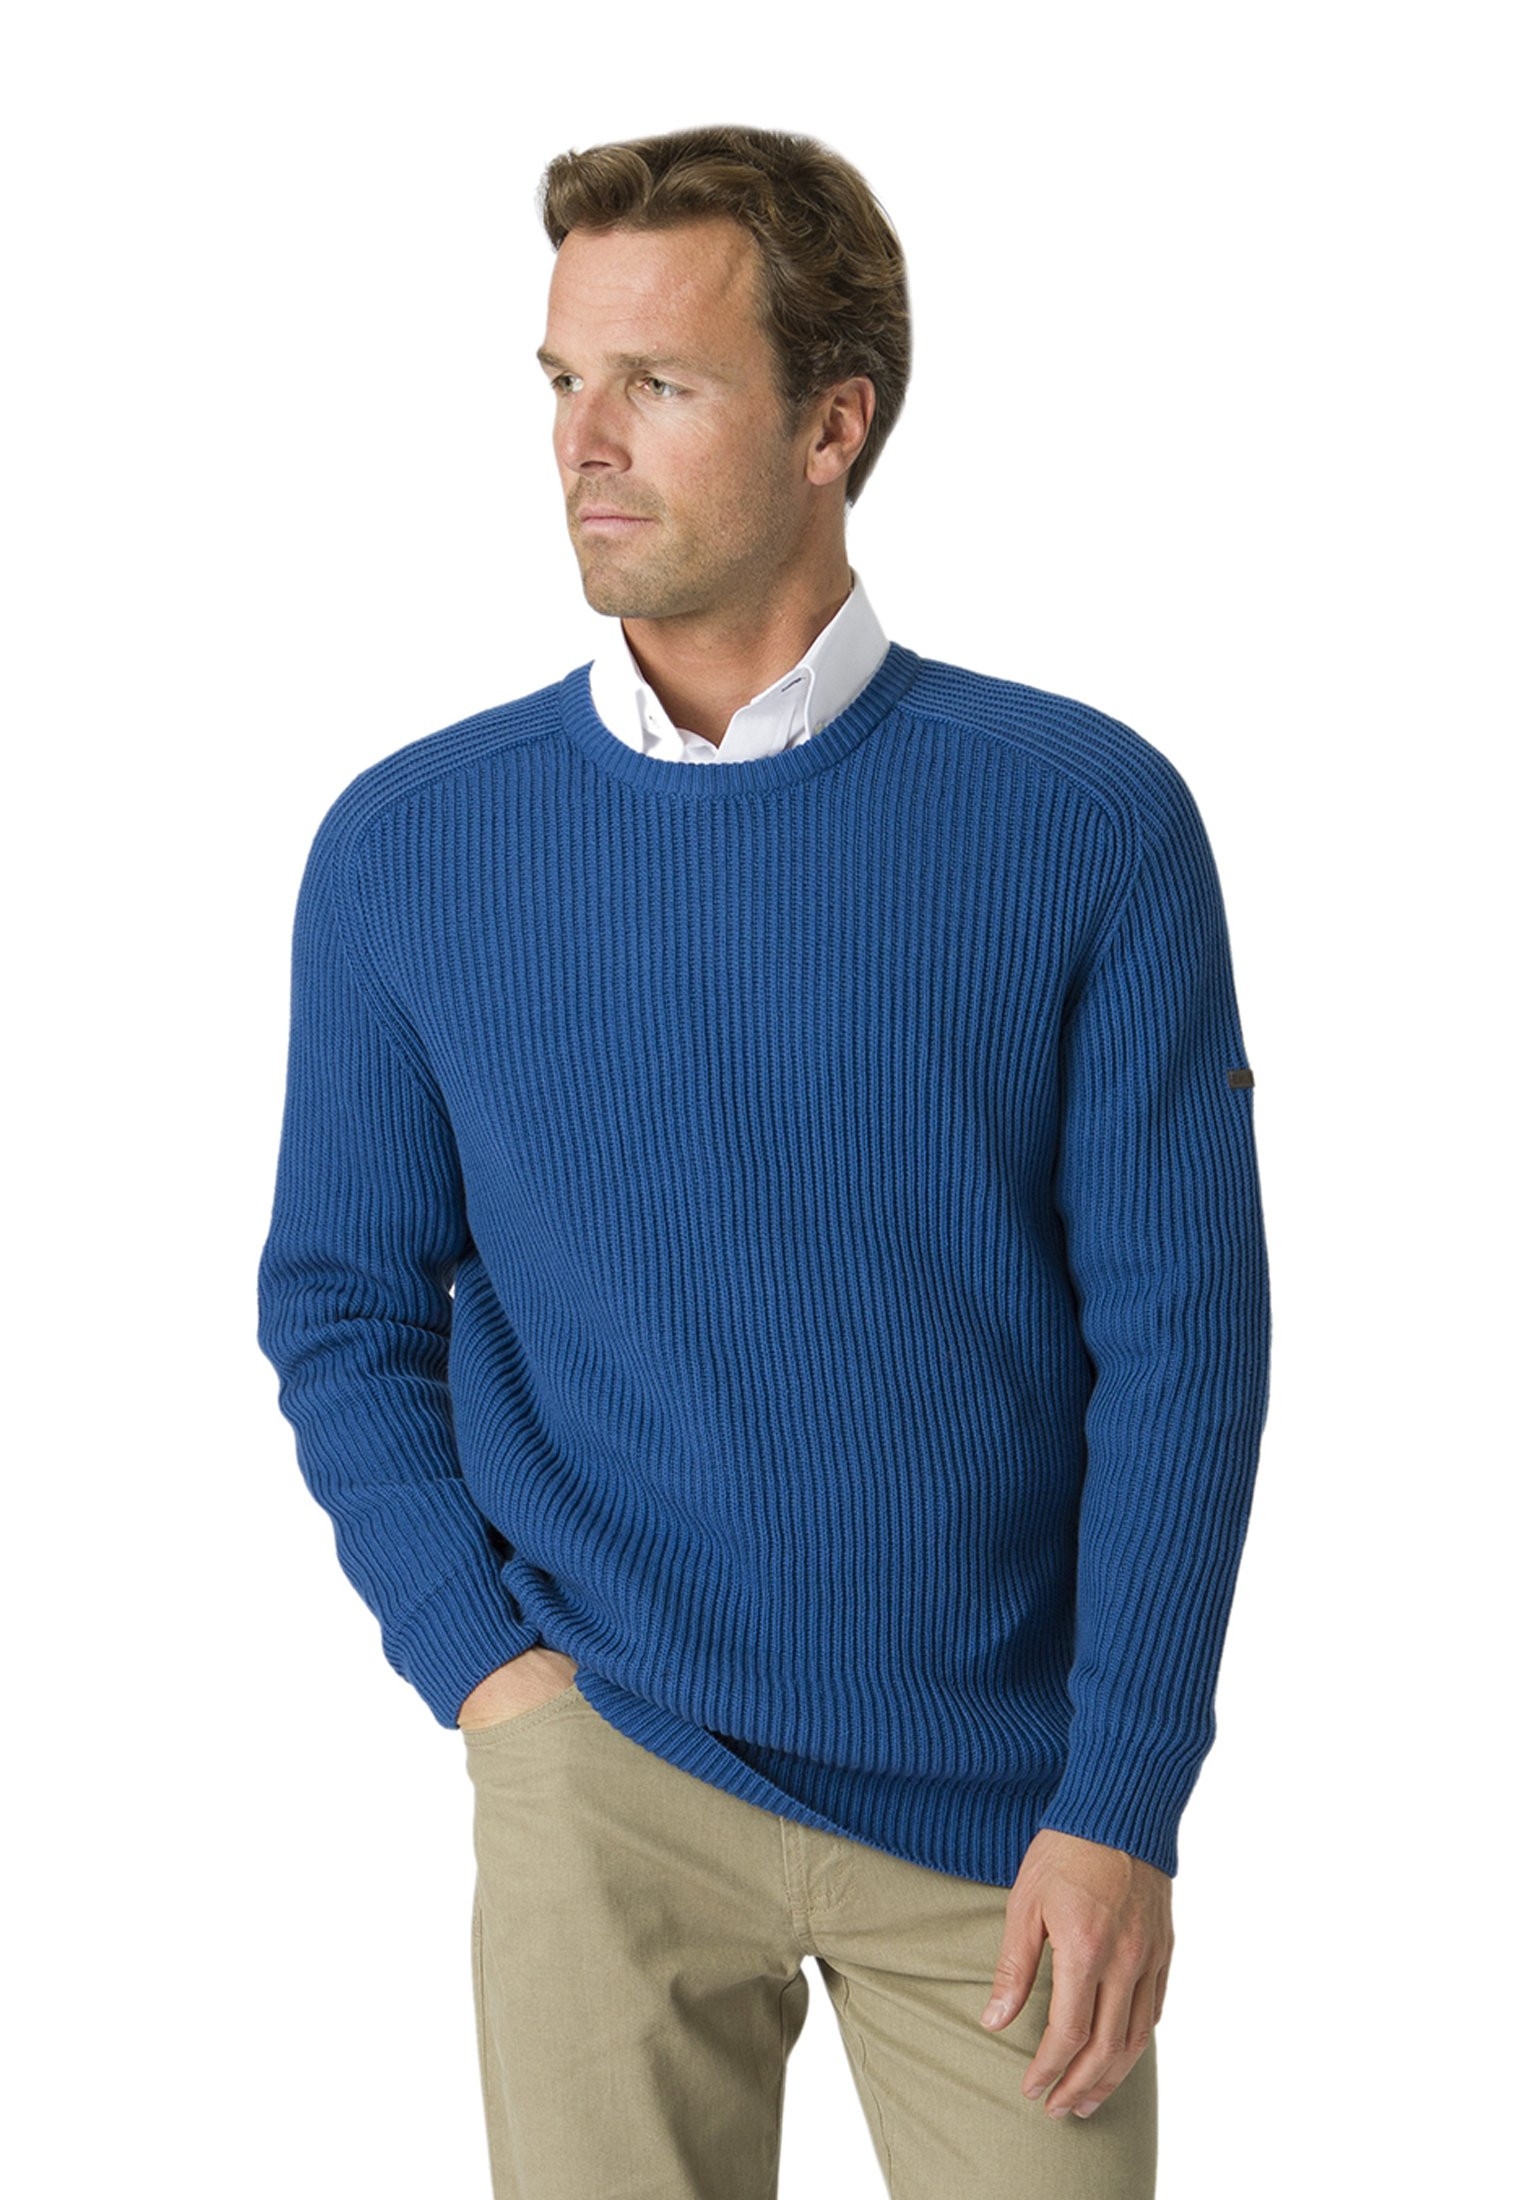 Clyston Ocean Ribbed Crew Neck